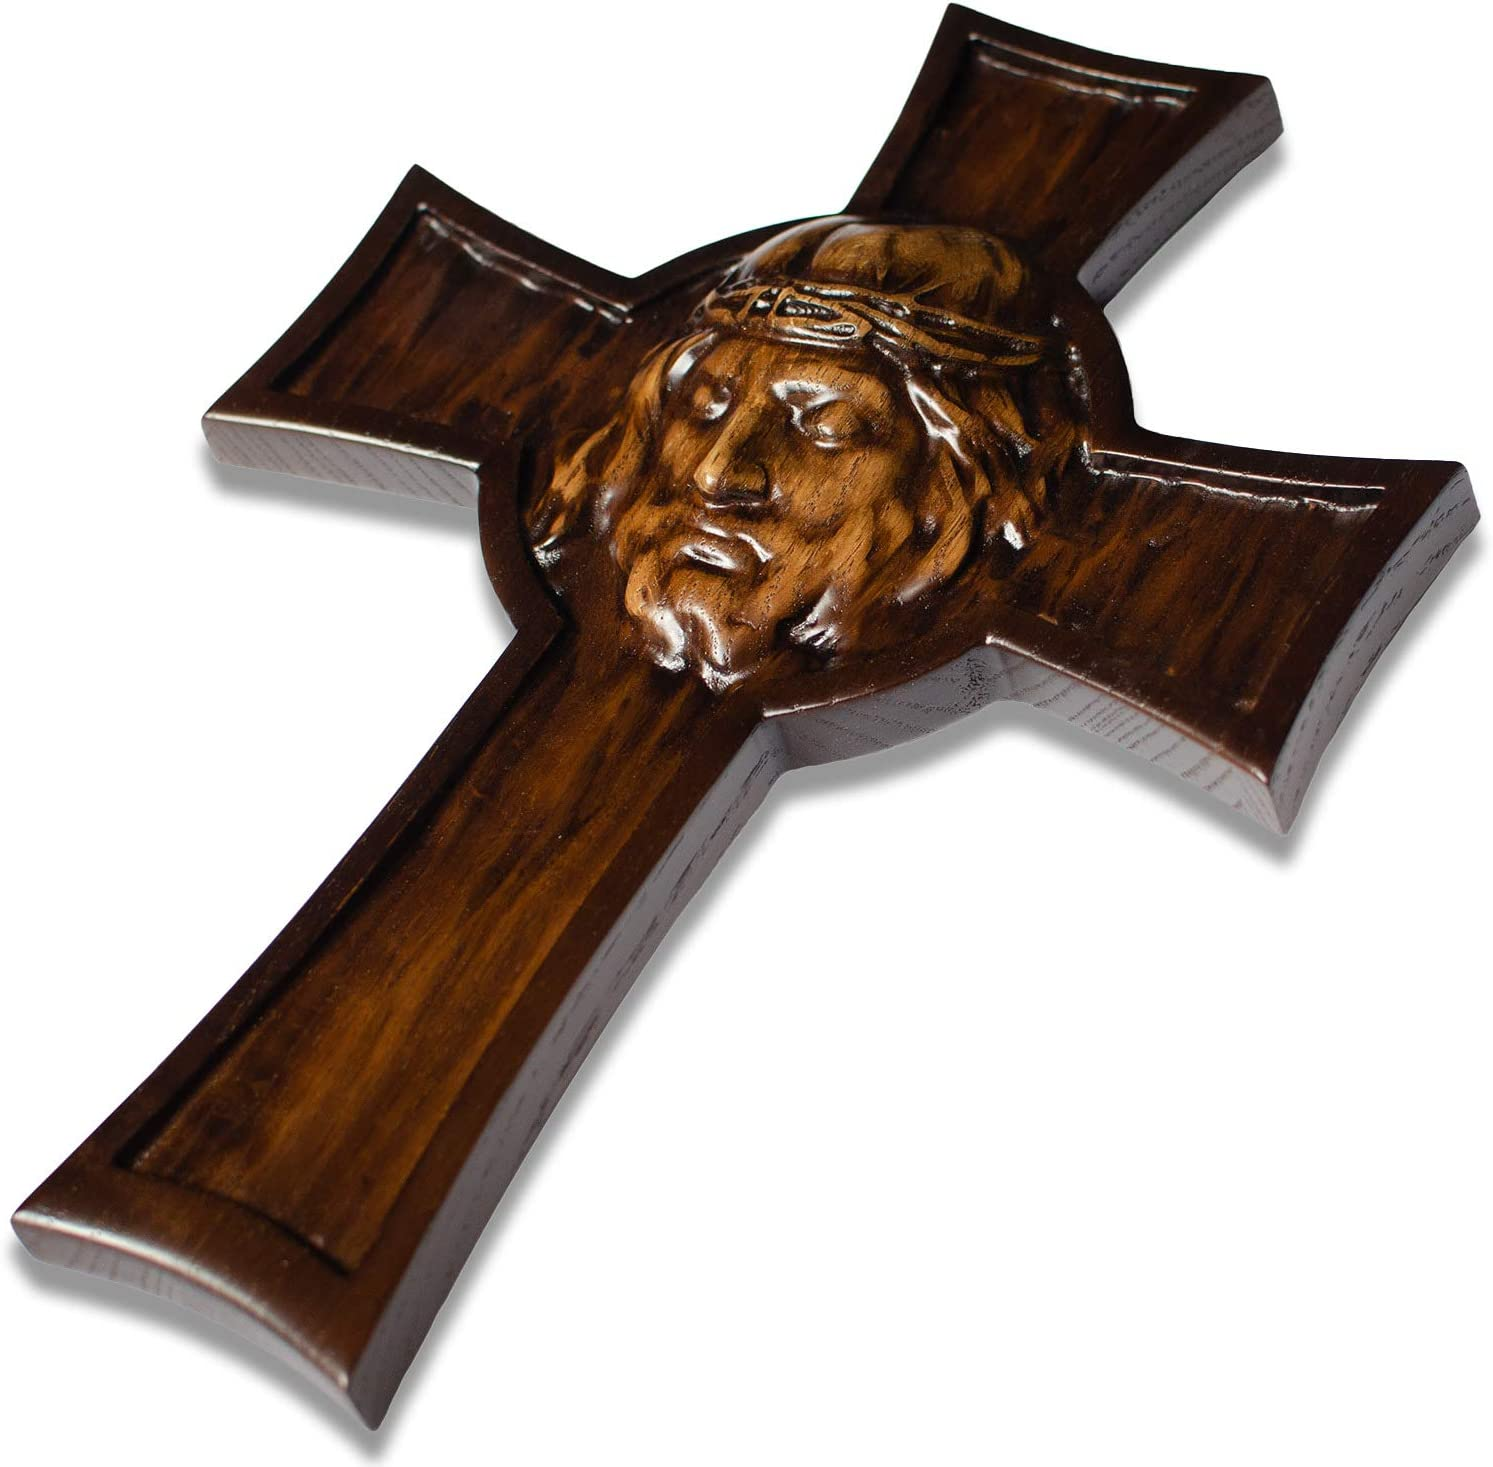 Handmade Wooden Wall Cross for Home Decor - Holy Jesus Face - Decorative Catholic Hanging Crosses - 12 Inch